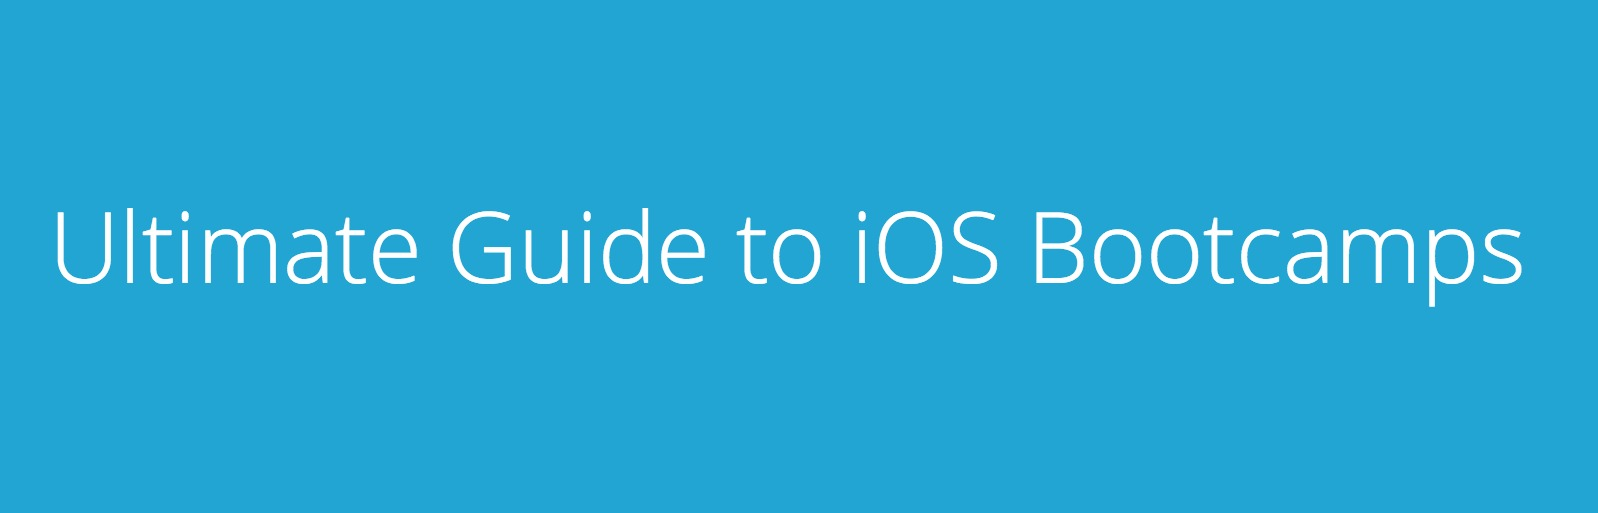 Ultimate Guide to iOS Bootcamps